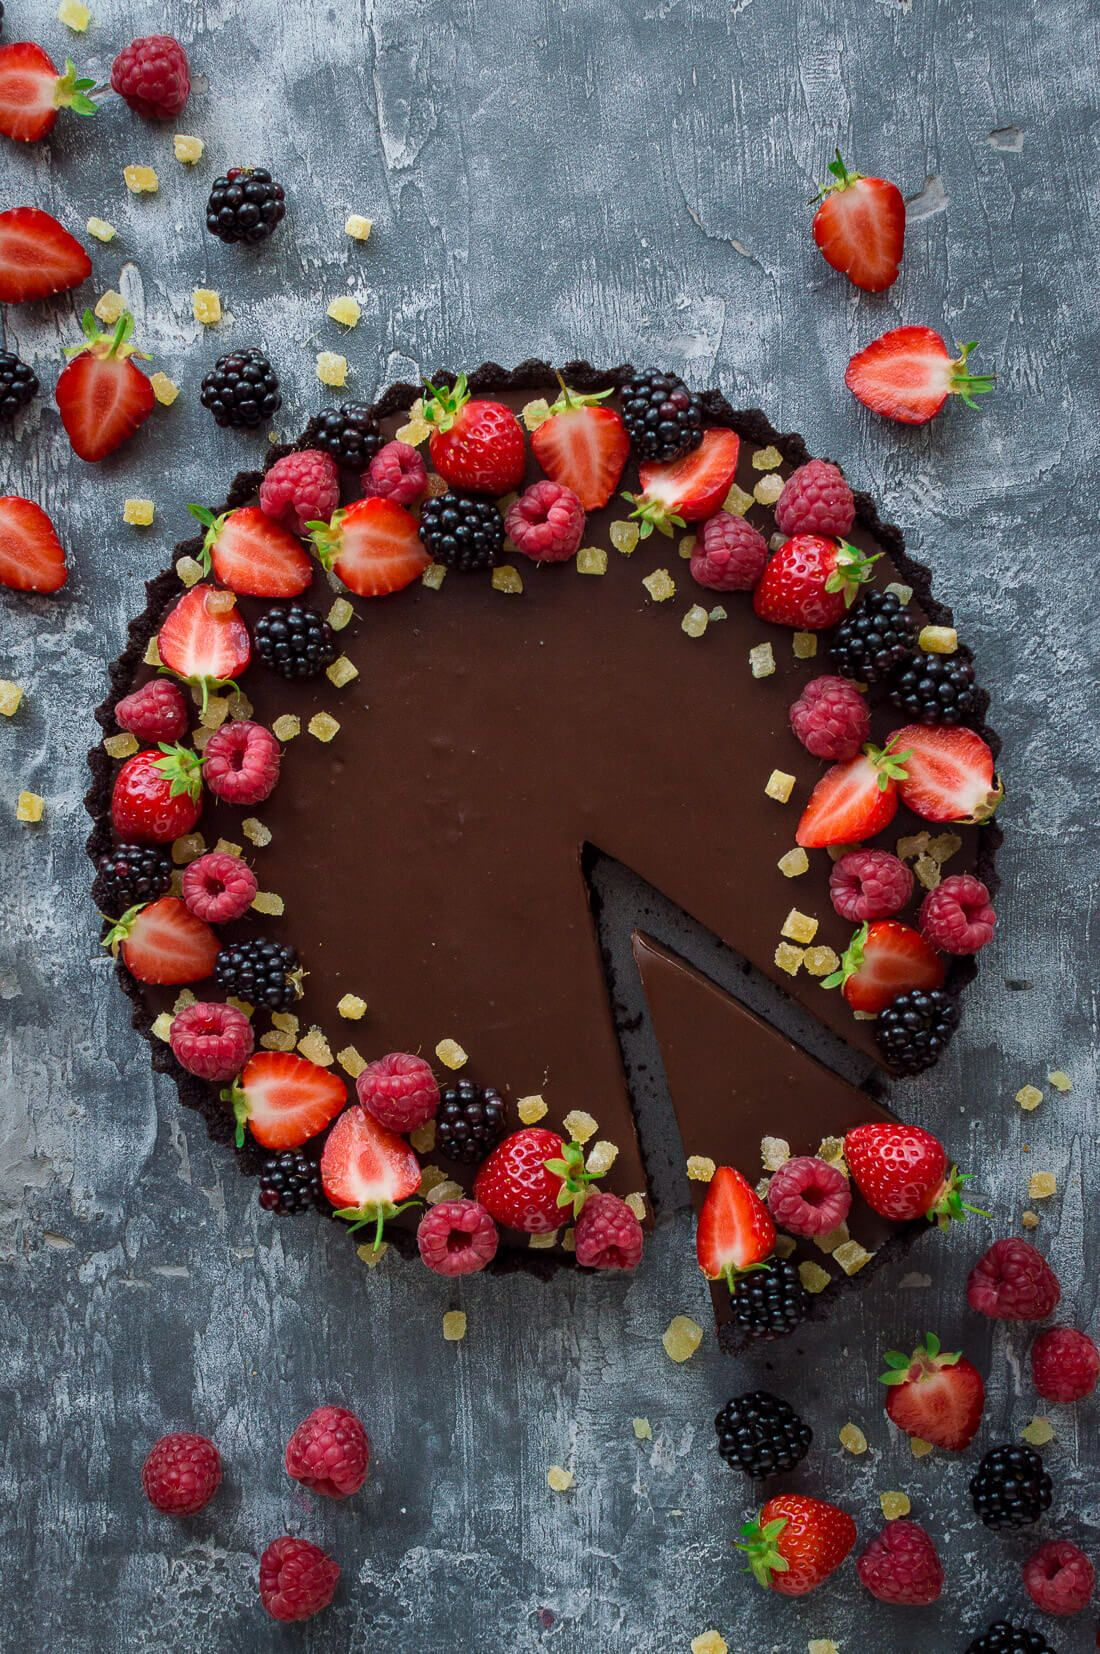 Top Down Photo Of Vegan Chocolate Ginger Tart Decorated With